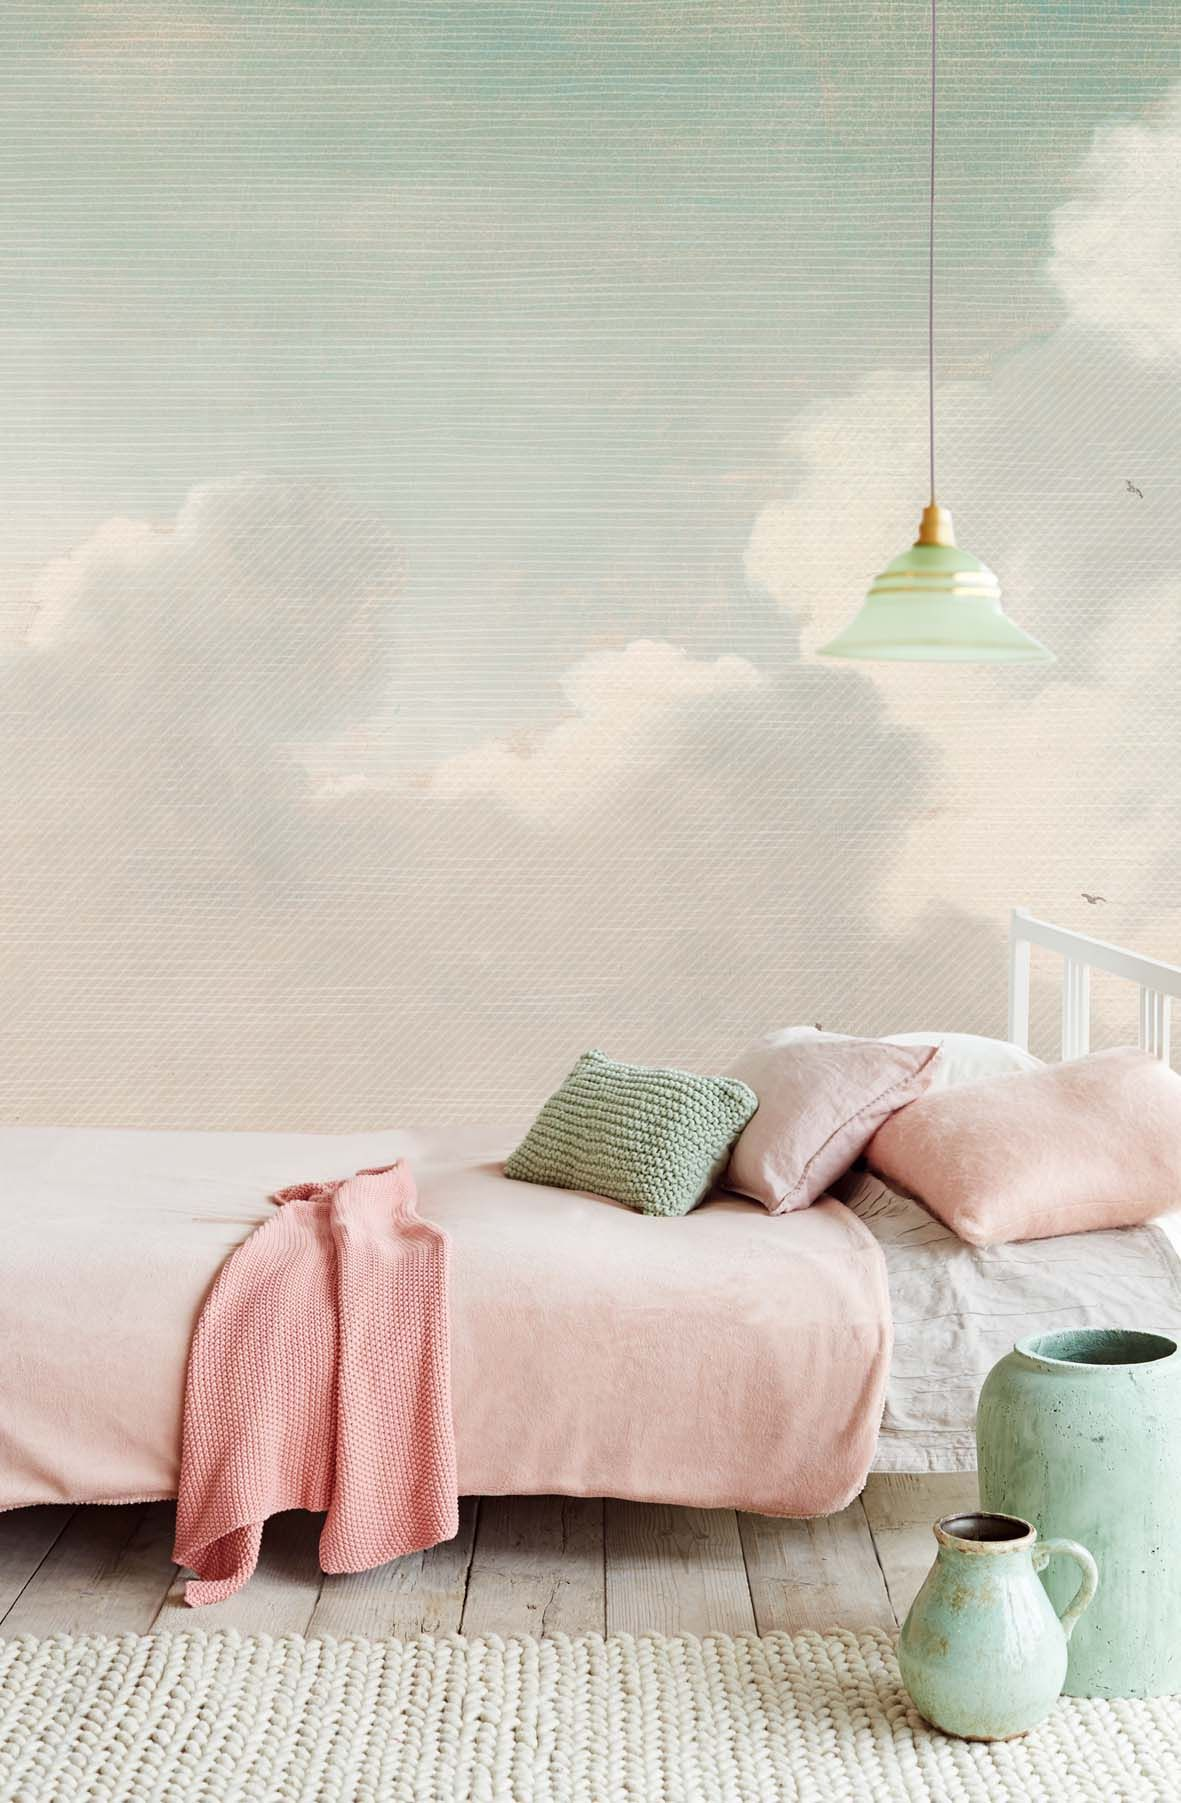 Cloud Wallpaper For Bedroom Masterpiece Intrade Itg Ab I Like This Wallpaper A Lot